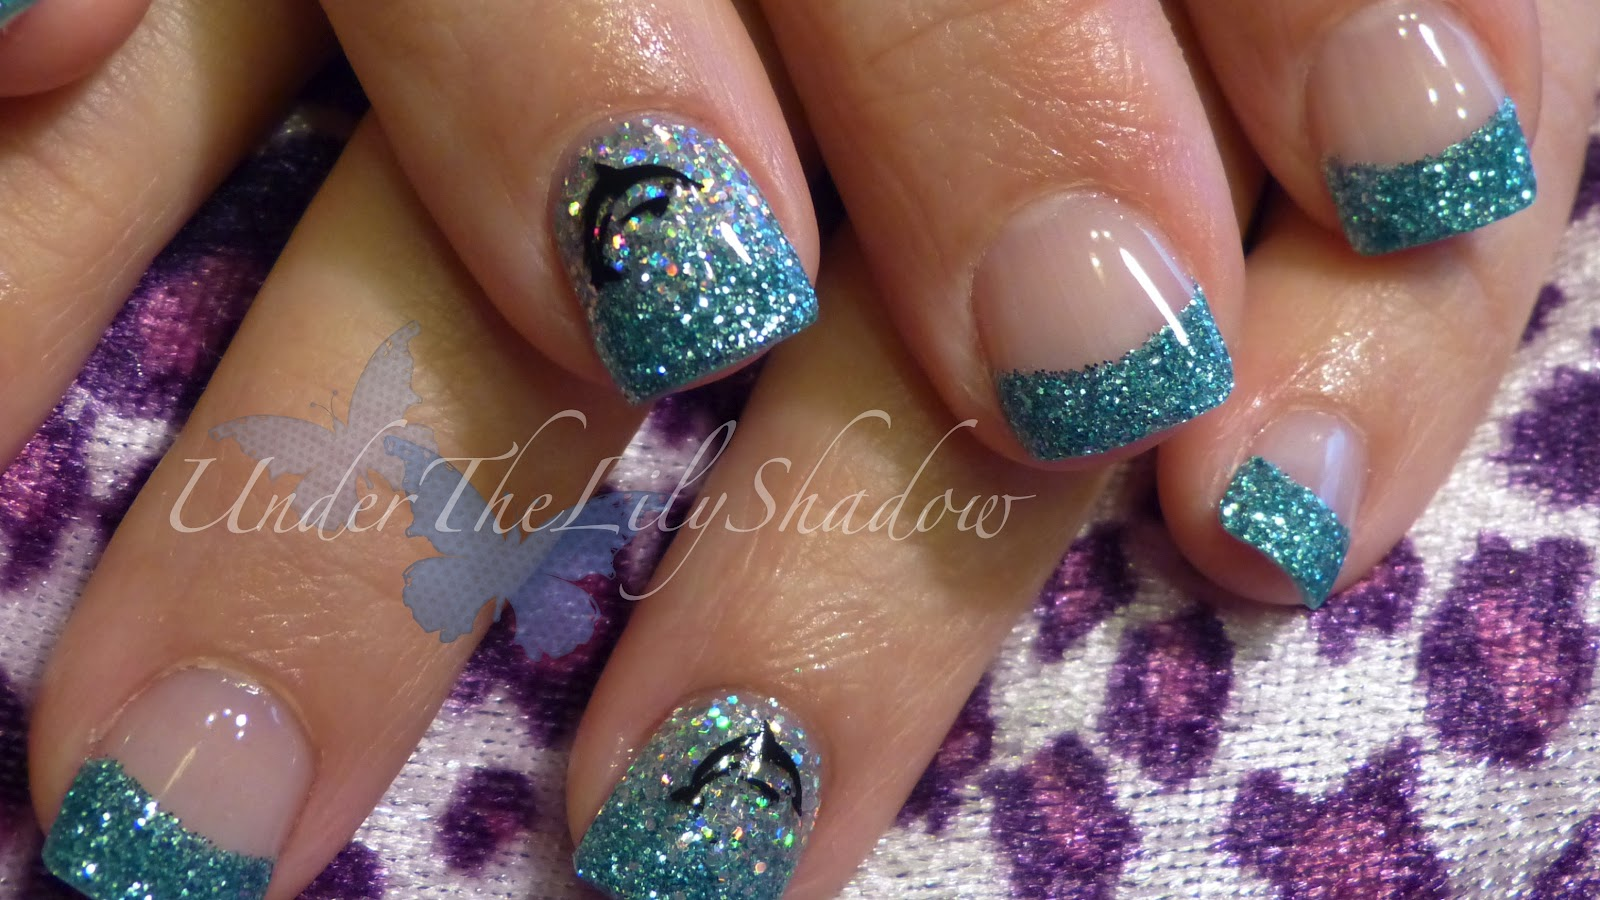 underthelilyshadow: ☆★ Dolphin nail art